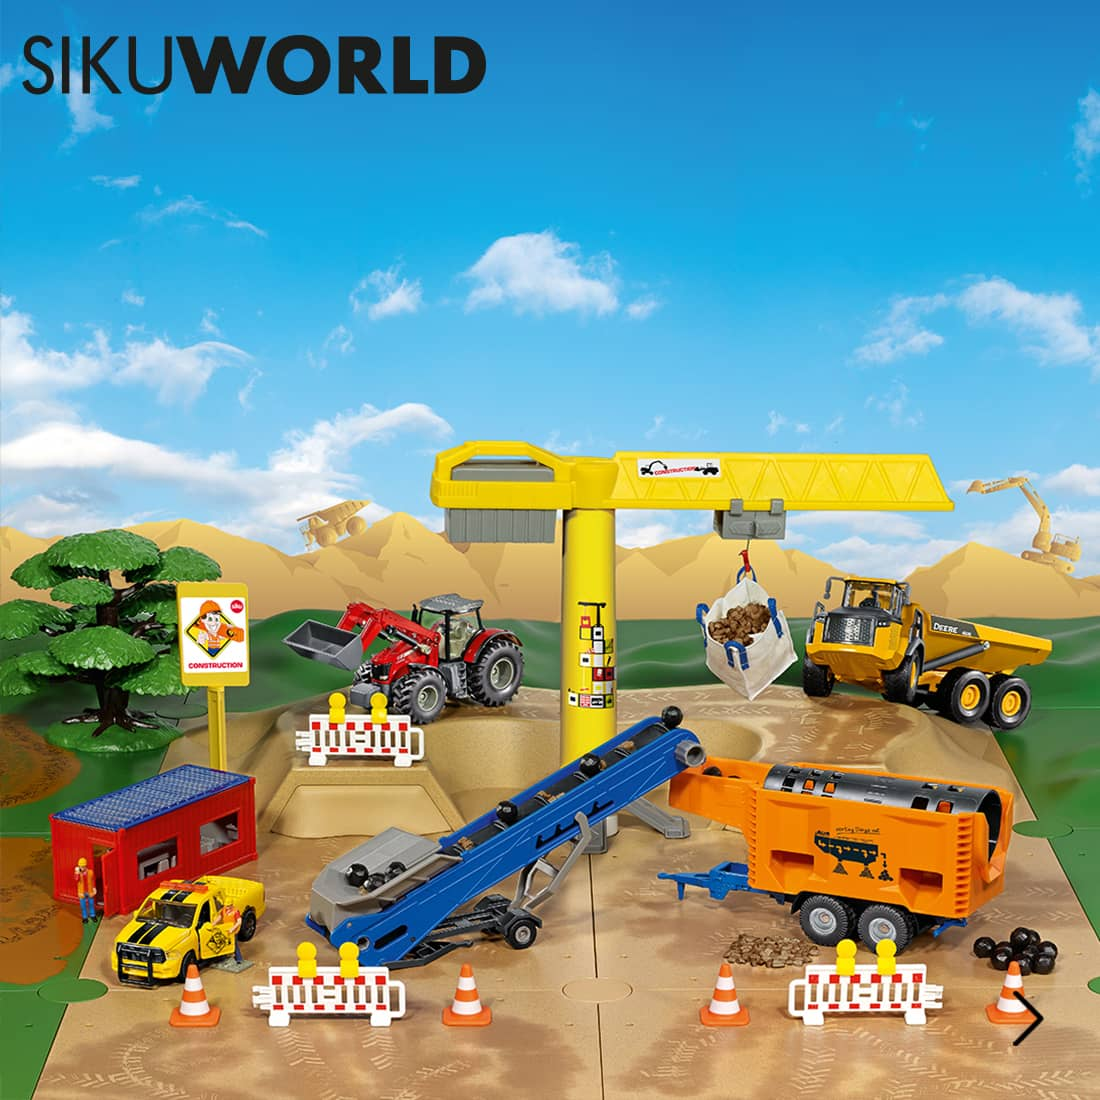 Siku World